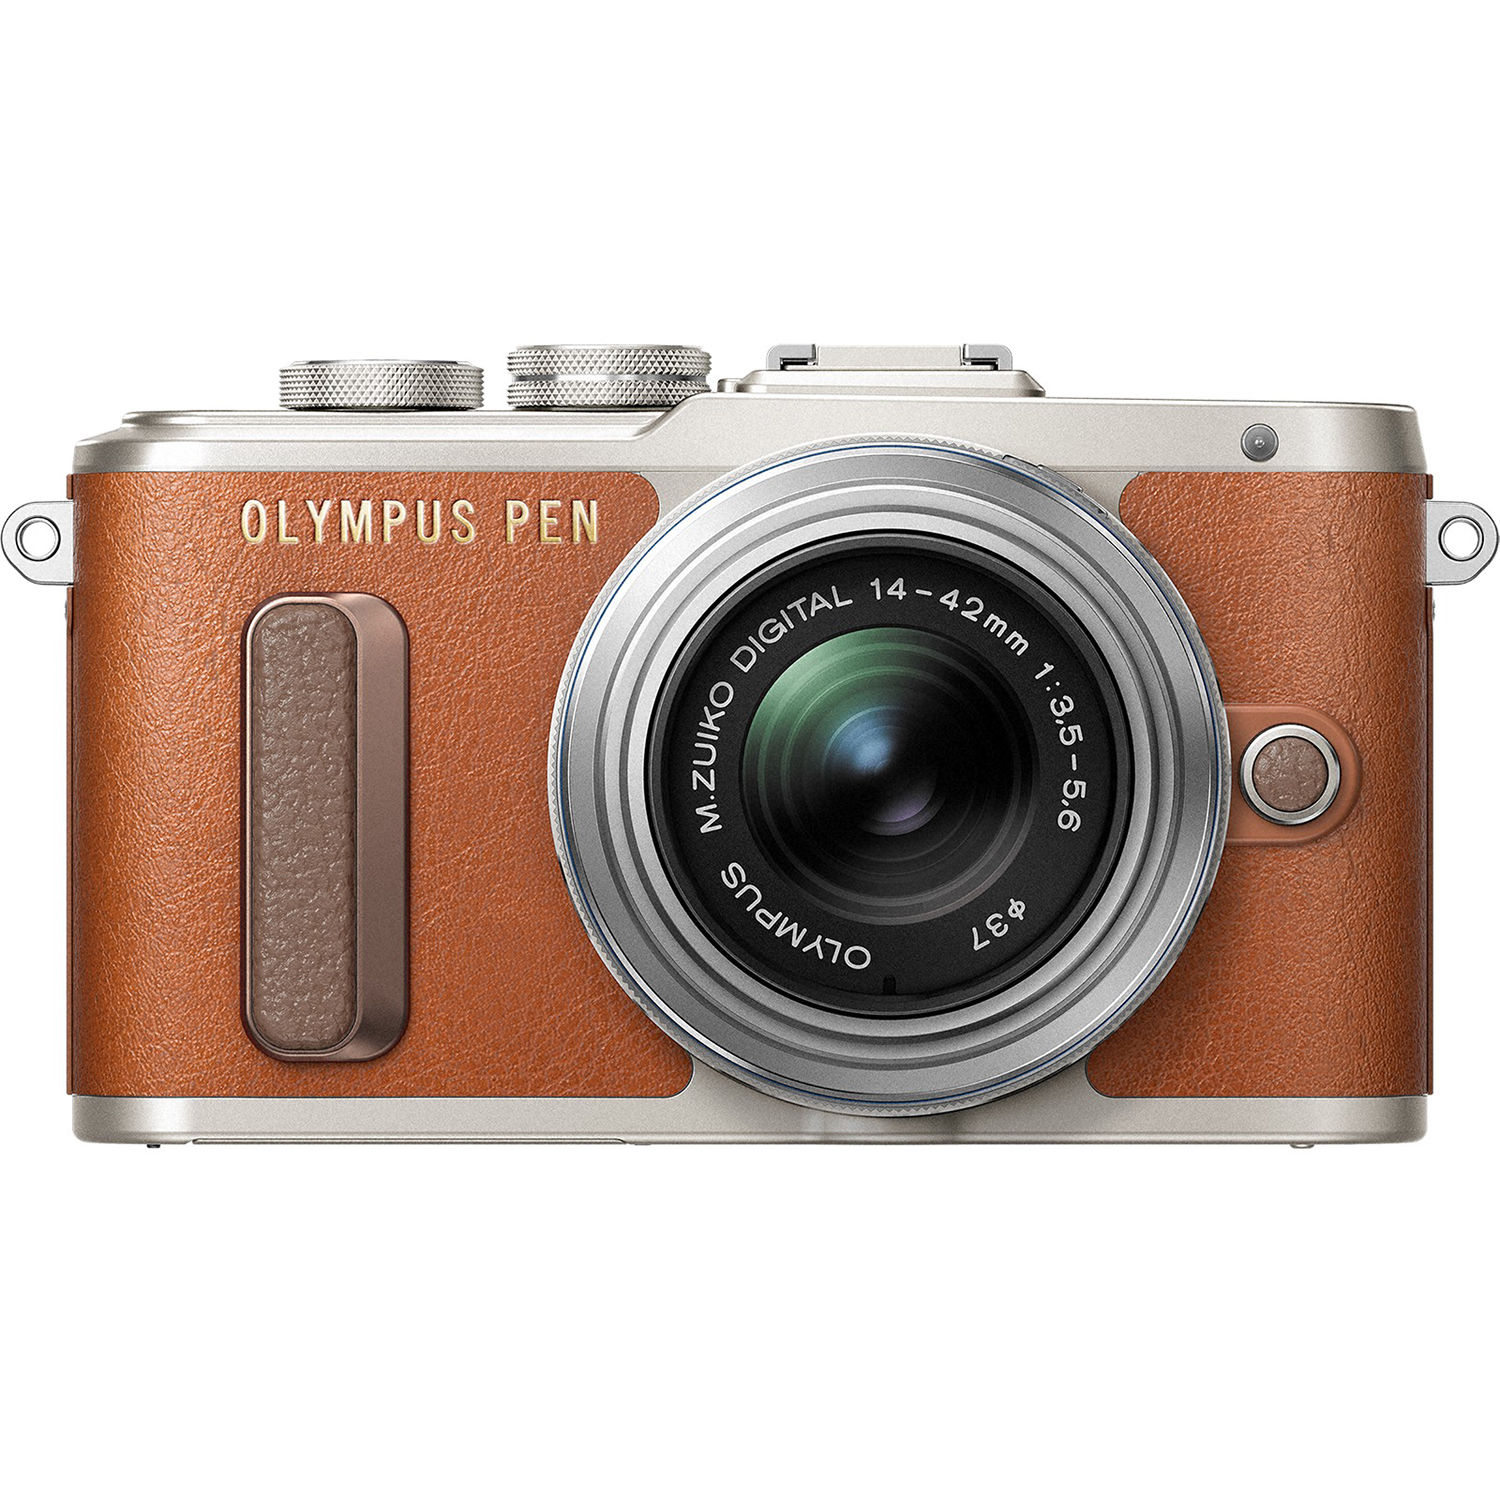 Olympus Digital Camera: Olympus PEN E-PL8 Mirrorless Micro Four Thirds